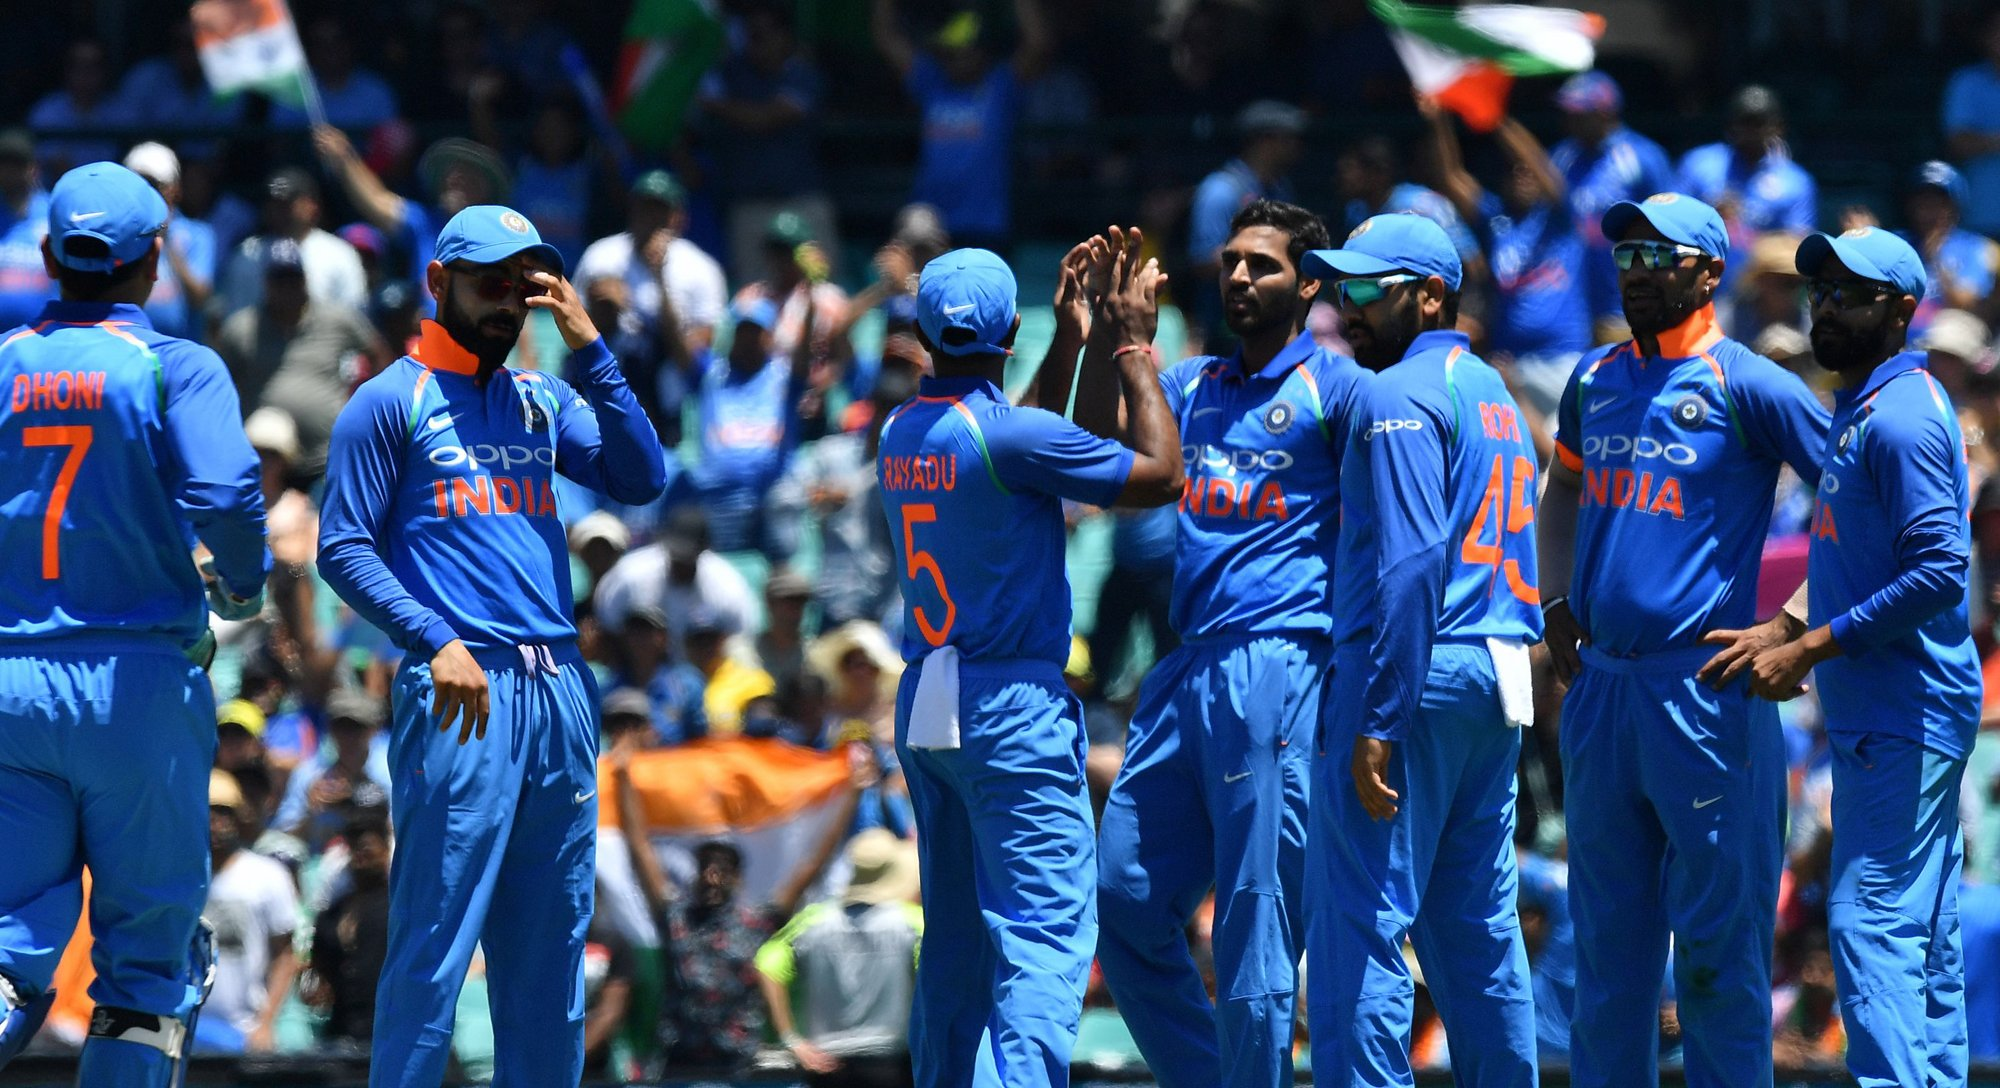 indian bowler reported for suspect bowling action